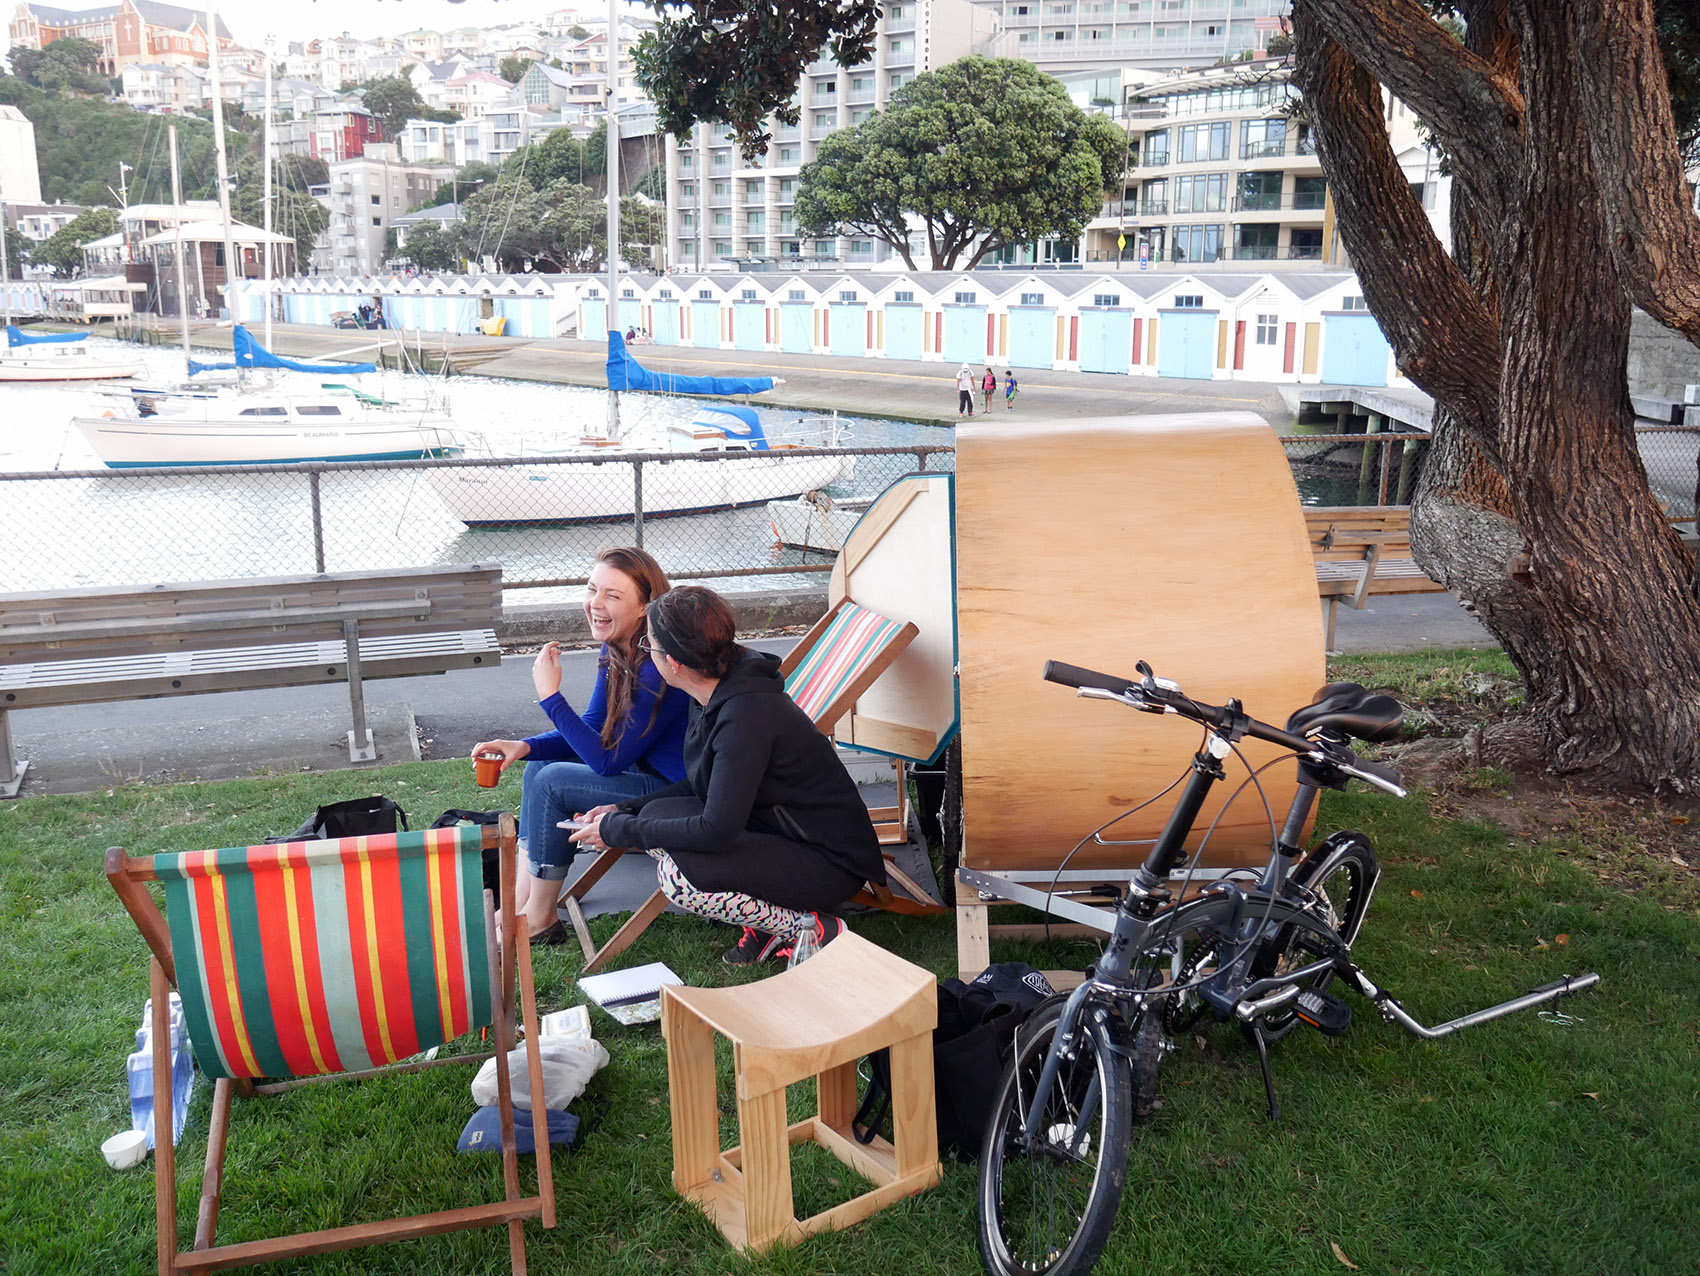 Caravan on grass by marina in Wellington